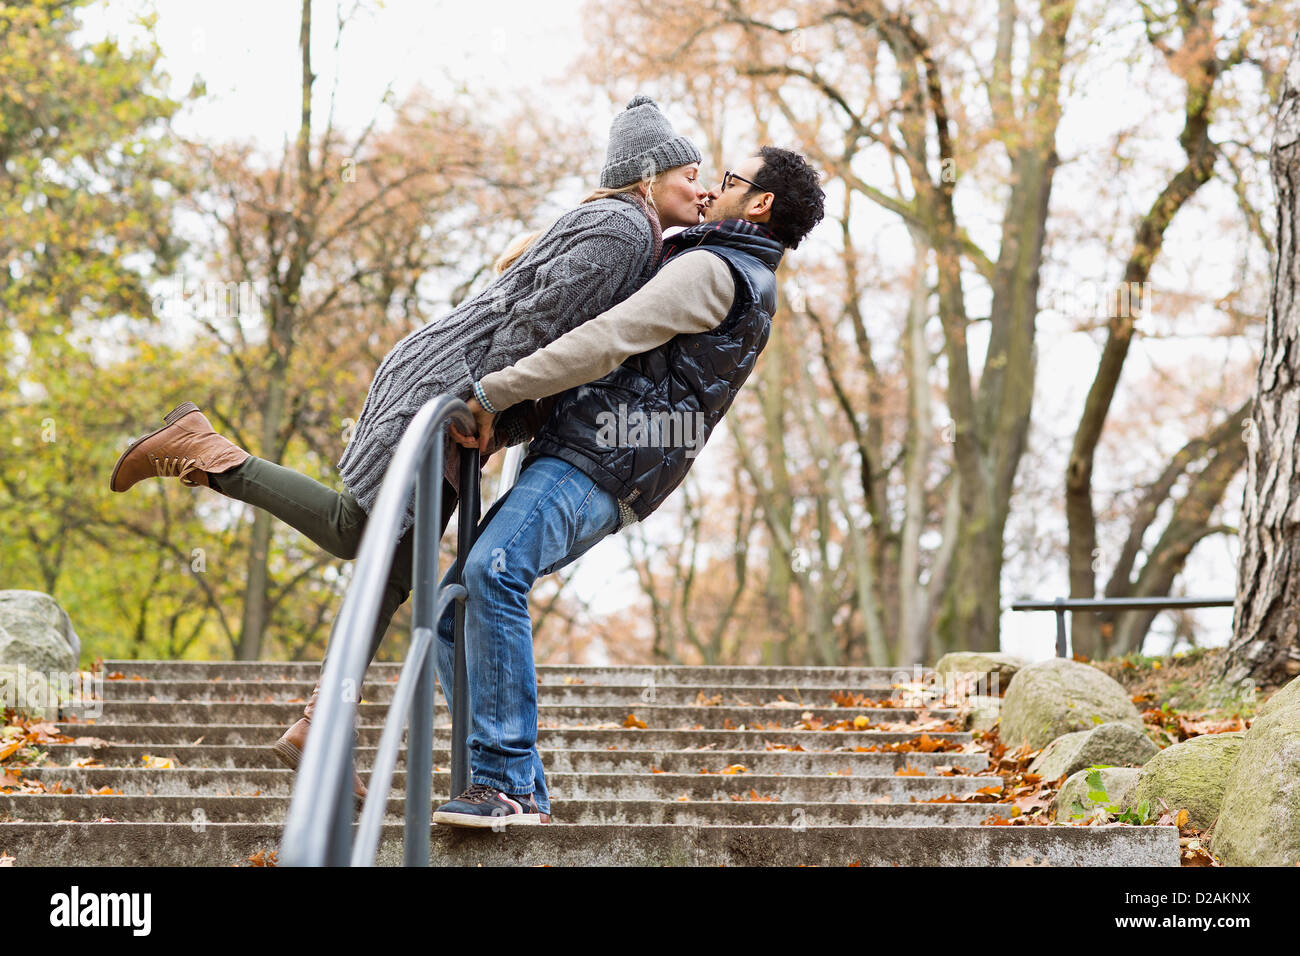 Couple kissing over park railing - Stock Image